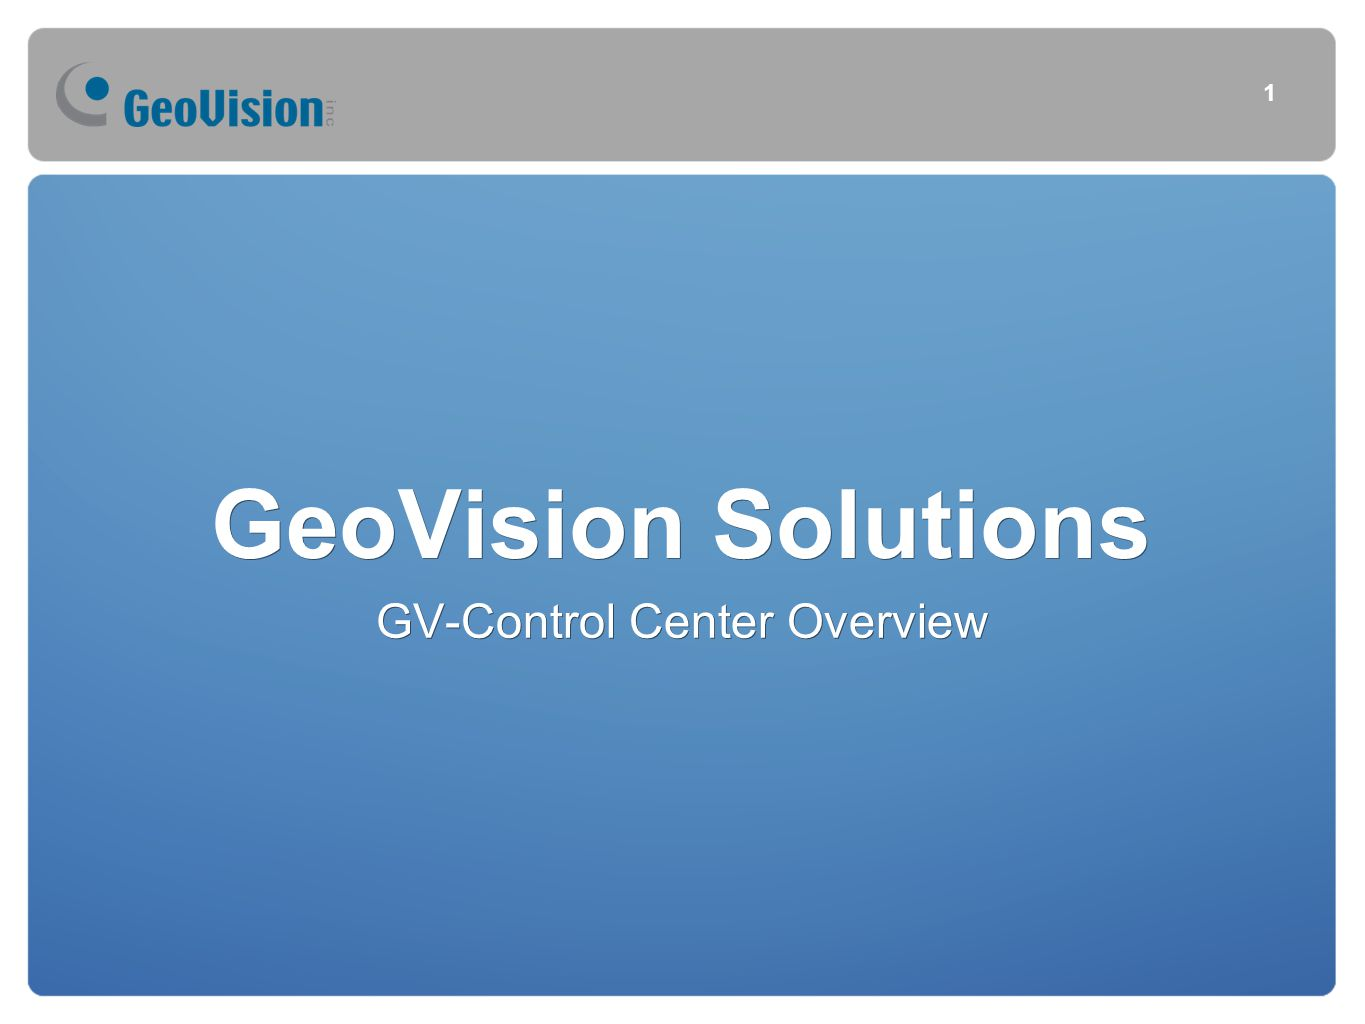 GV-Control Center Overview